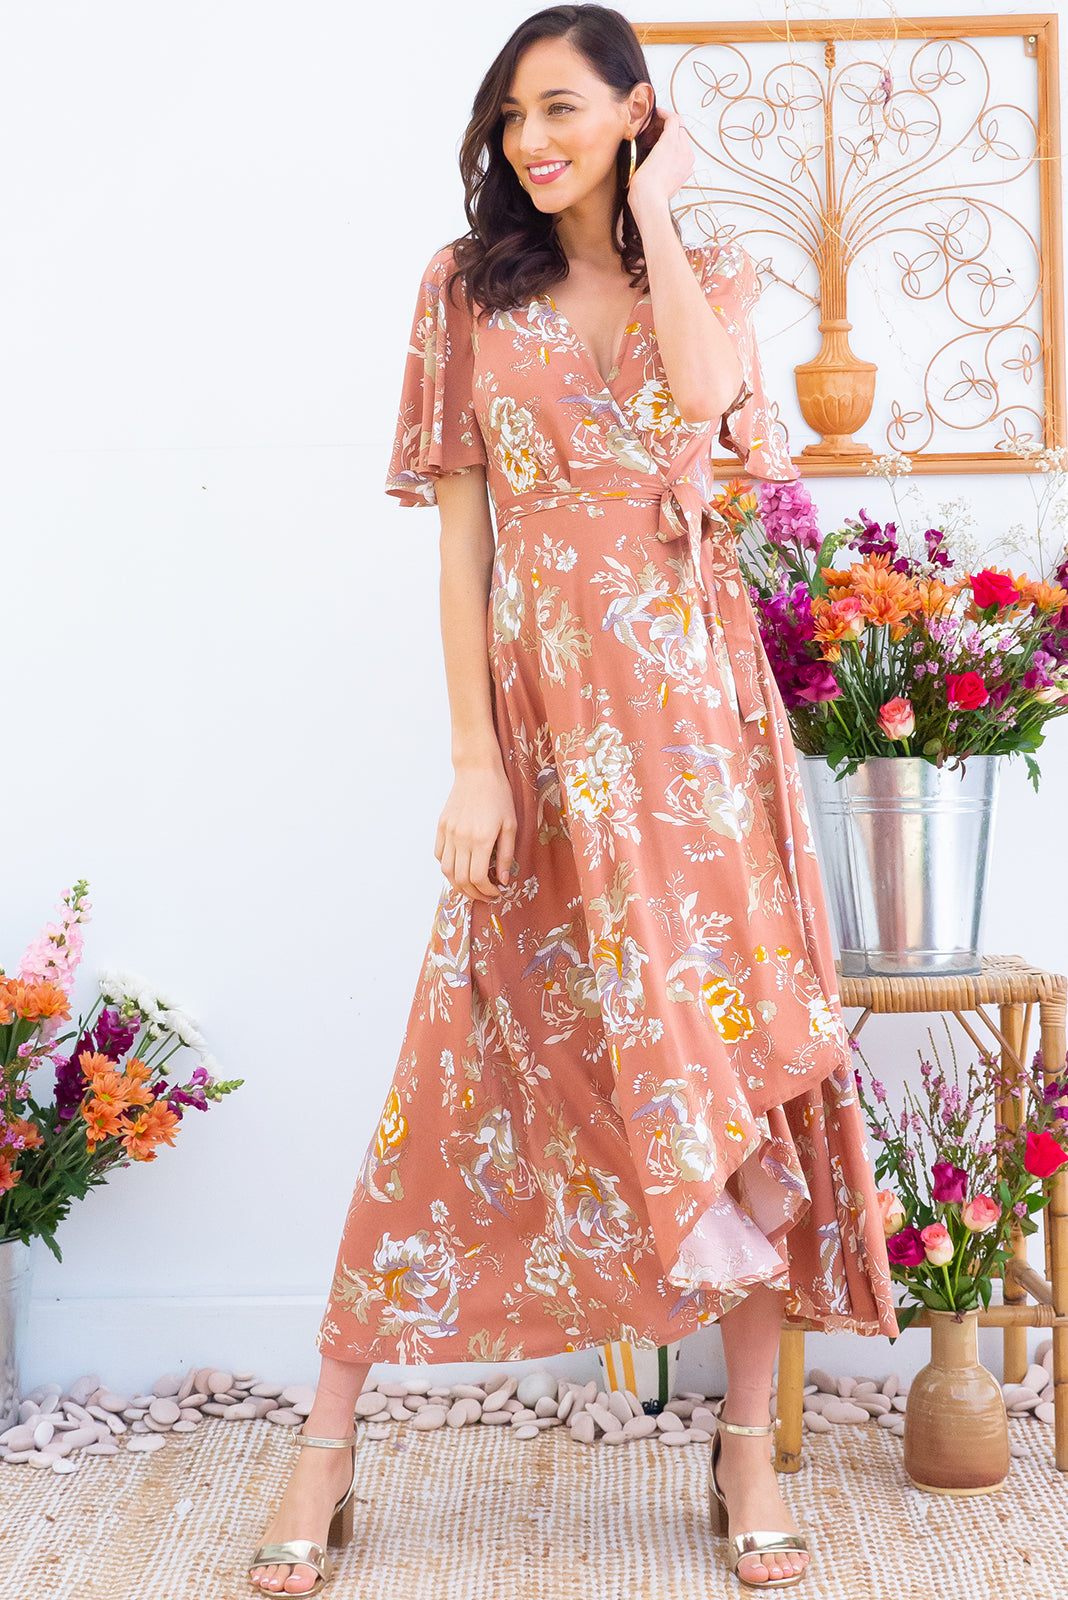 Petal Sepia Sparrow Maxi Wrap Dress features a flutter sleeve, adjustable wrap around waist and a dipped hemline in a soft woven 100% rayon fabric with a romantic bohemian floral and bird print in a soft terracotta tone